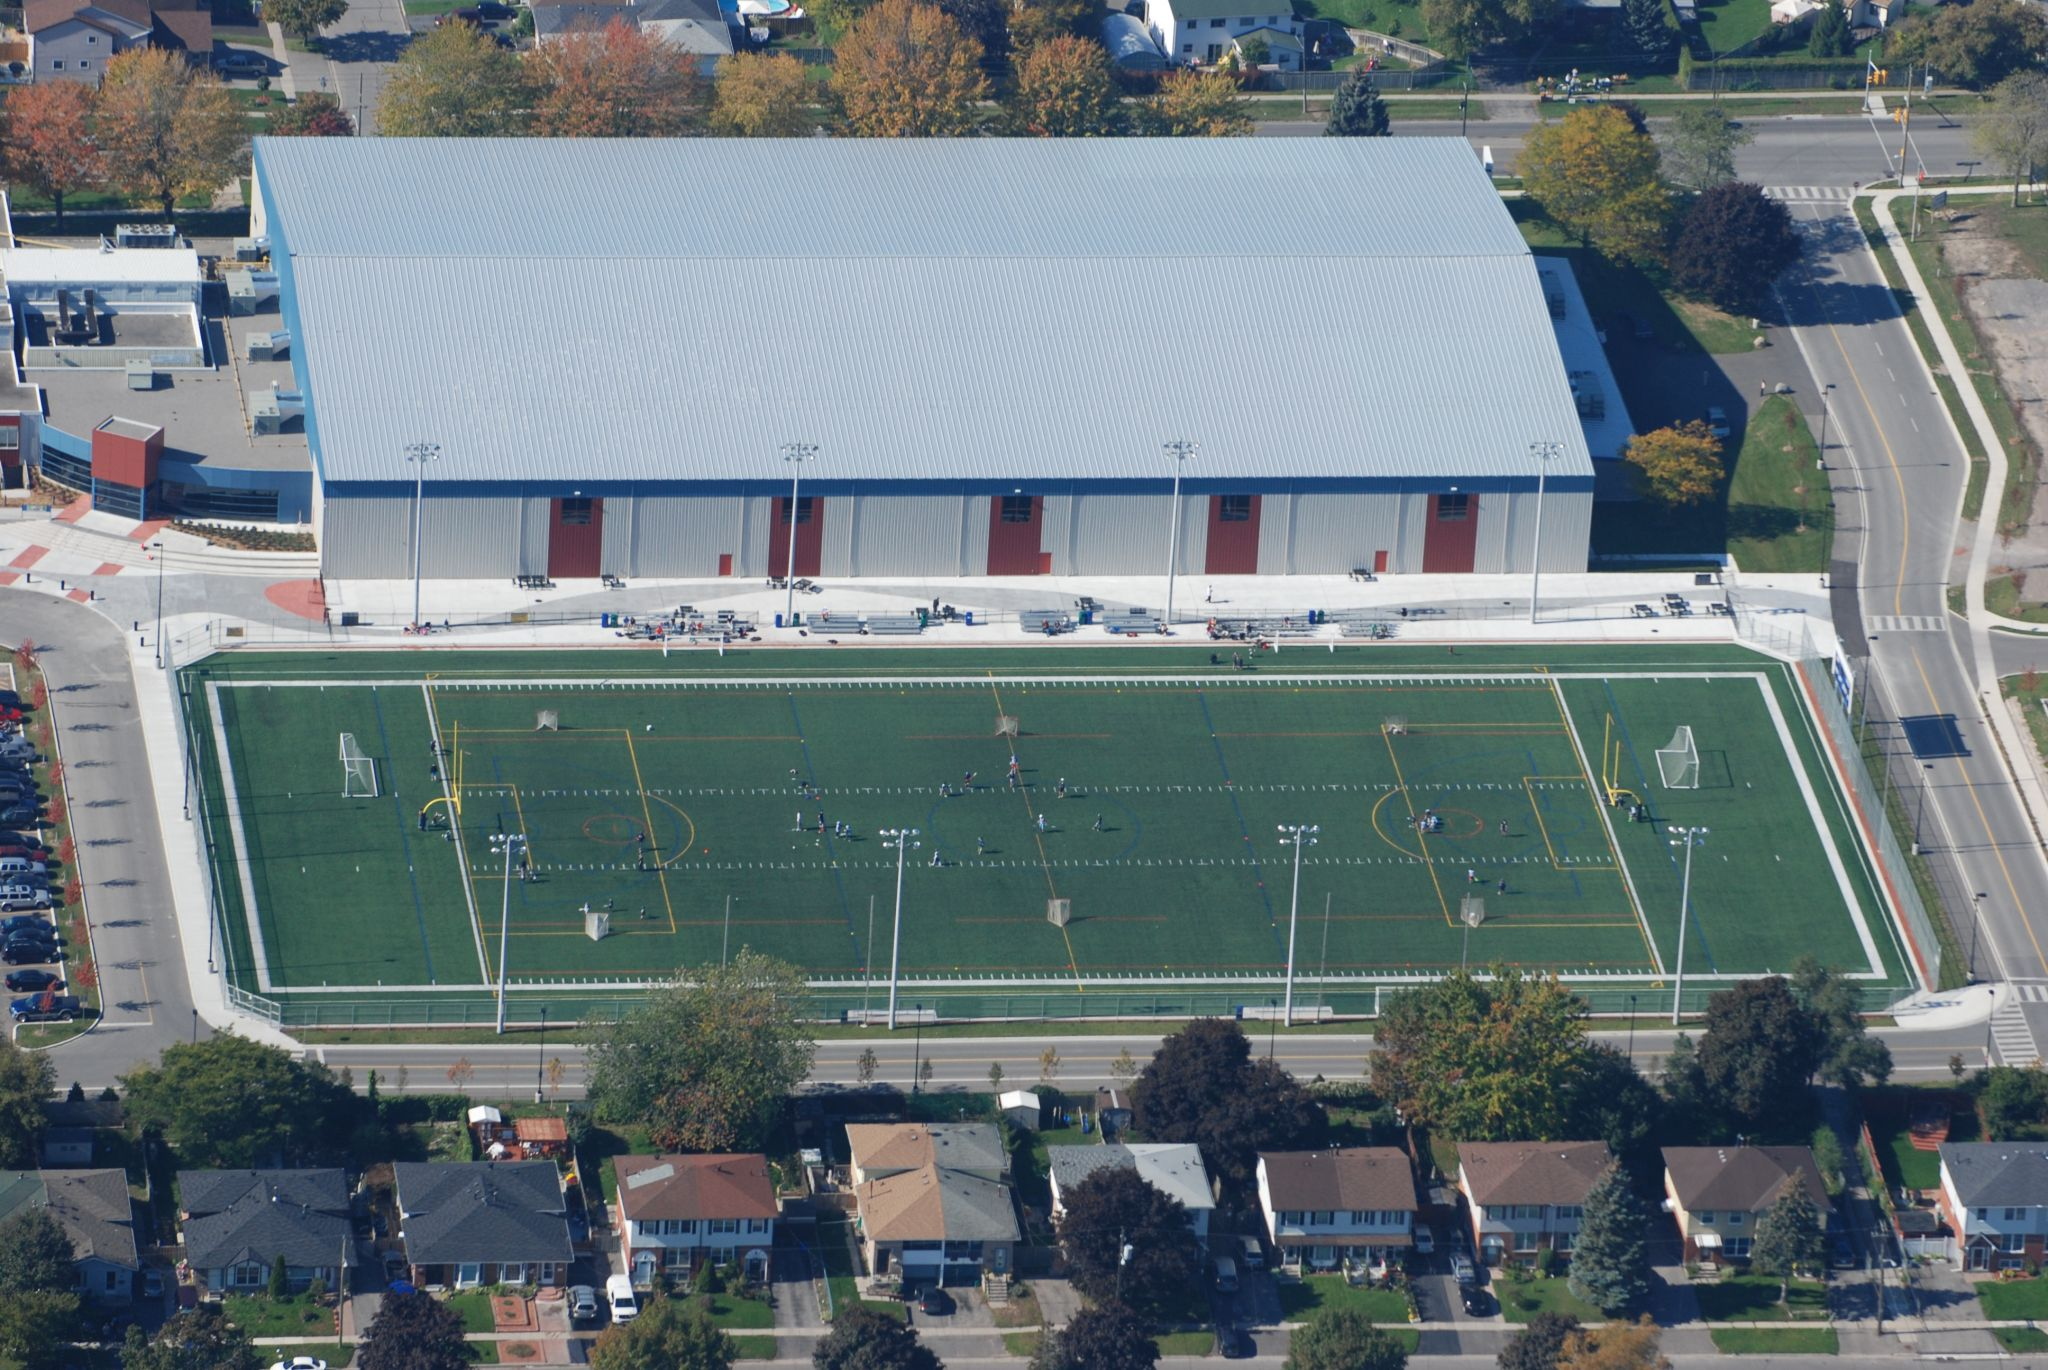 The 120,773-m2 (1.3 million-sf) City of Oshawa Civic Complex and Fieldhouse, renovated and expanded in 2011, has a standing-seam roof system and includes an indoor fieldhouse, swimming pool, five outdoor fields, and multiple indoor courts.